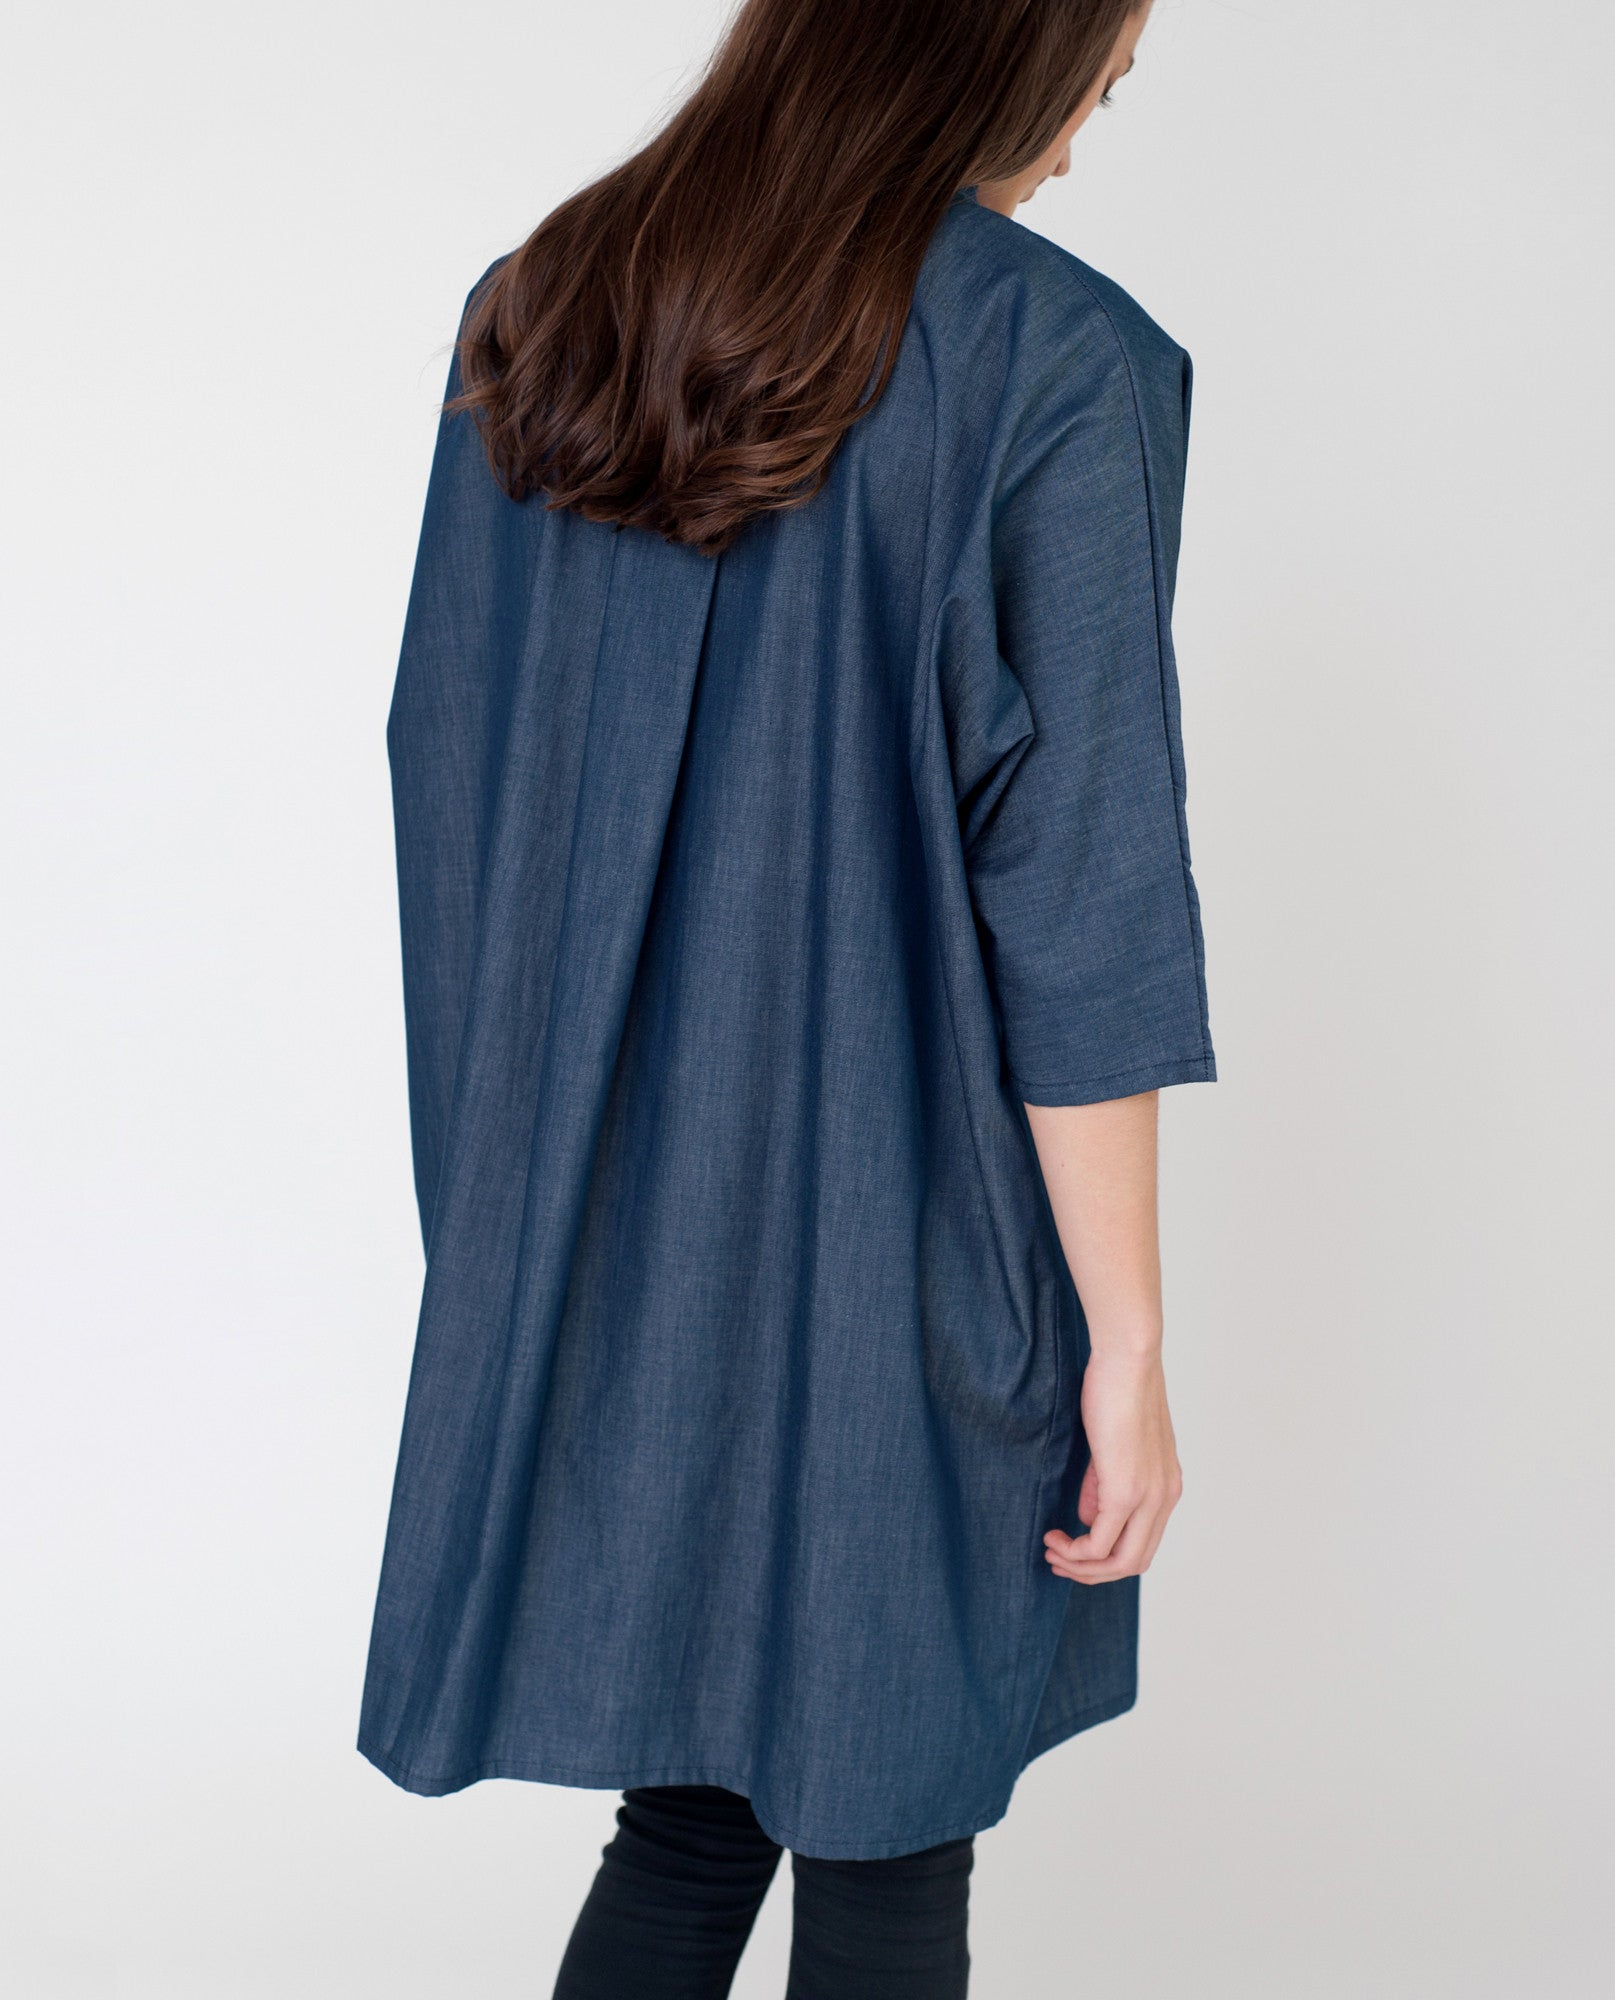 MADELINE Cotton Chambray Shirt In Navy